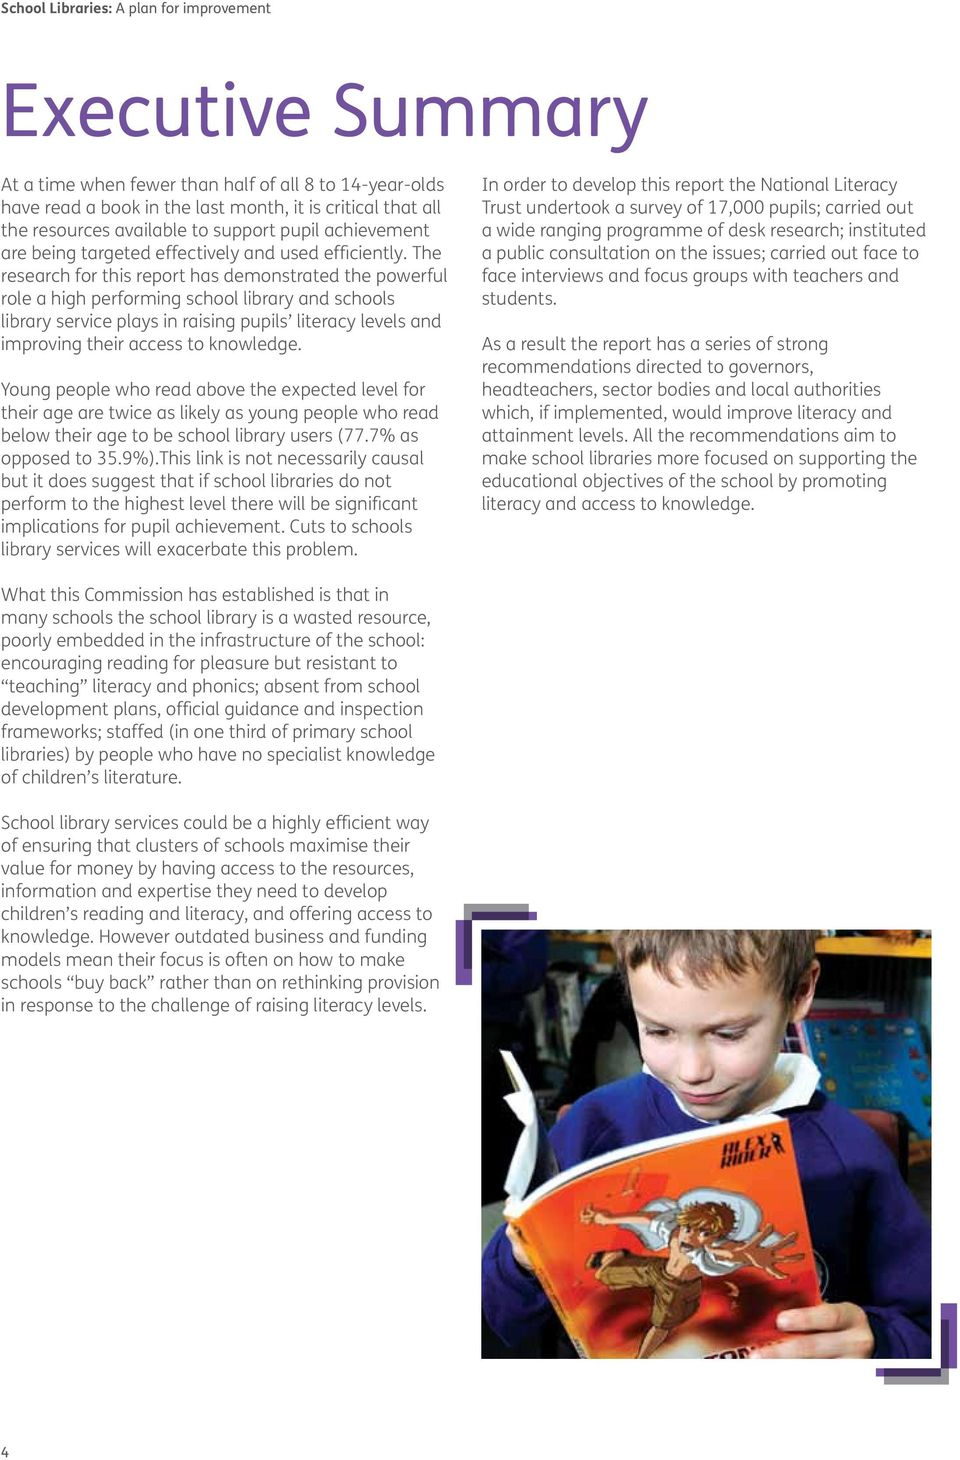 The research for this report has demonstrated the powerful role a high performing school library and schools library service plays in raising pupils literacy levels and improving their access to